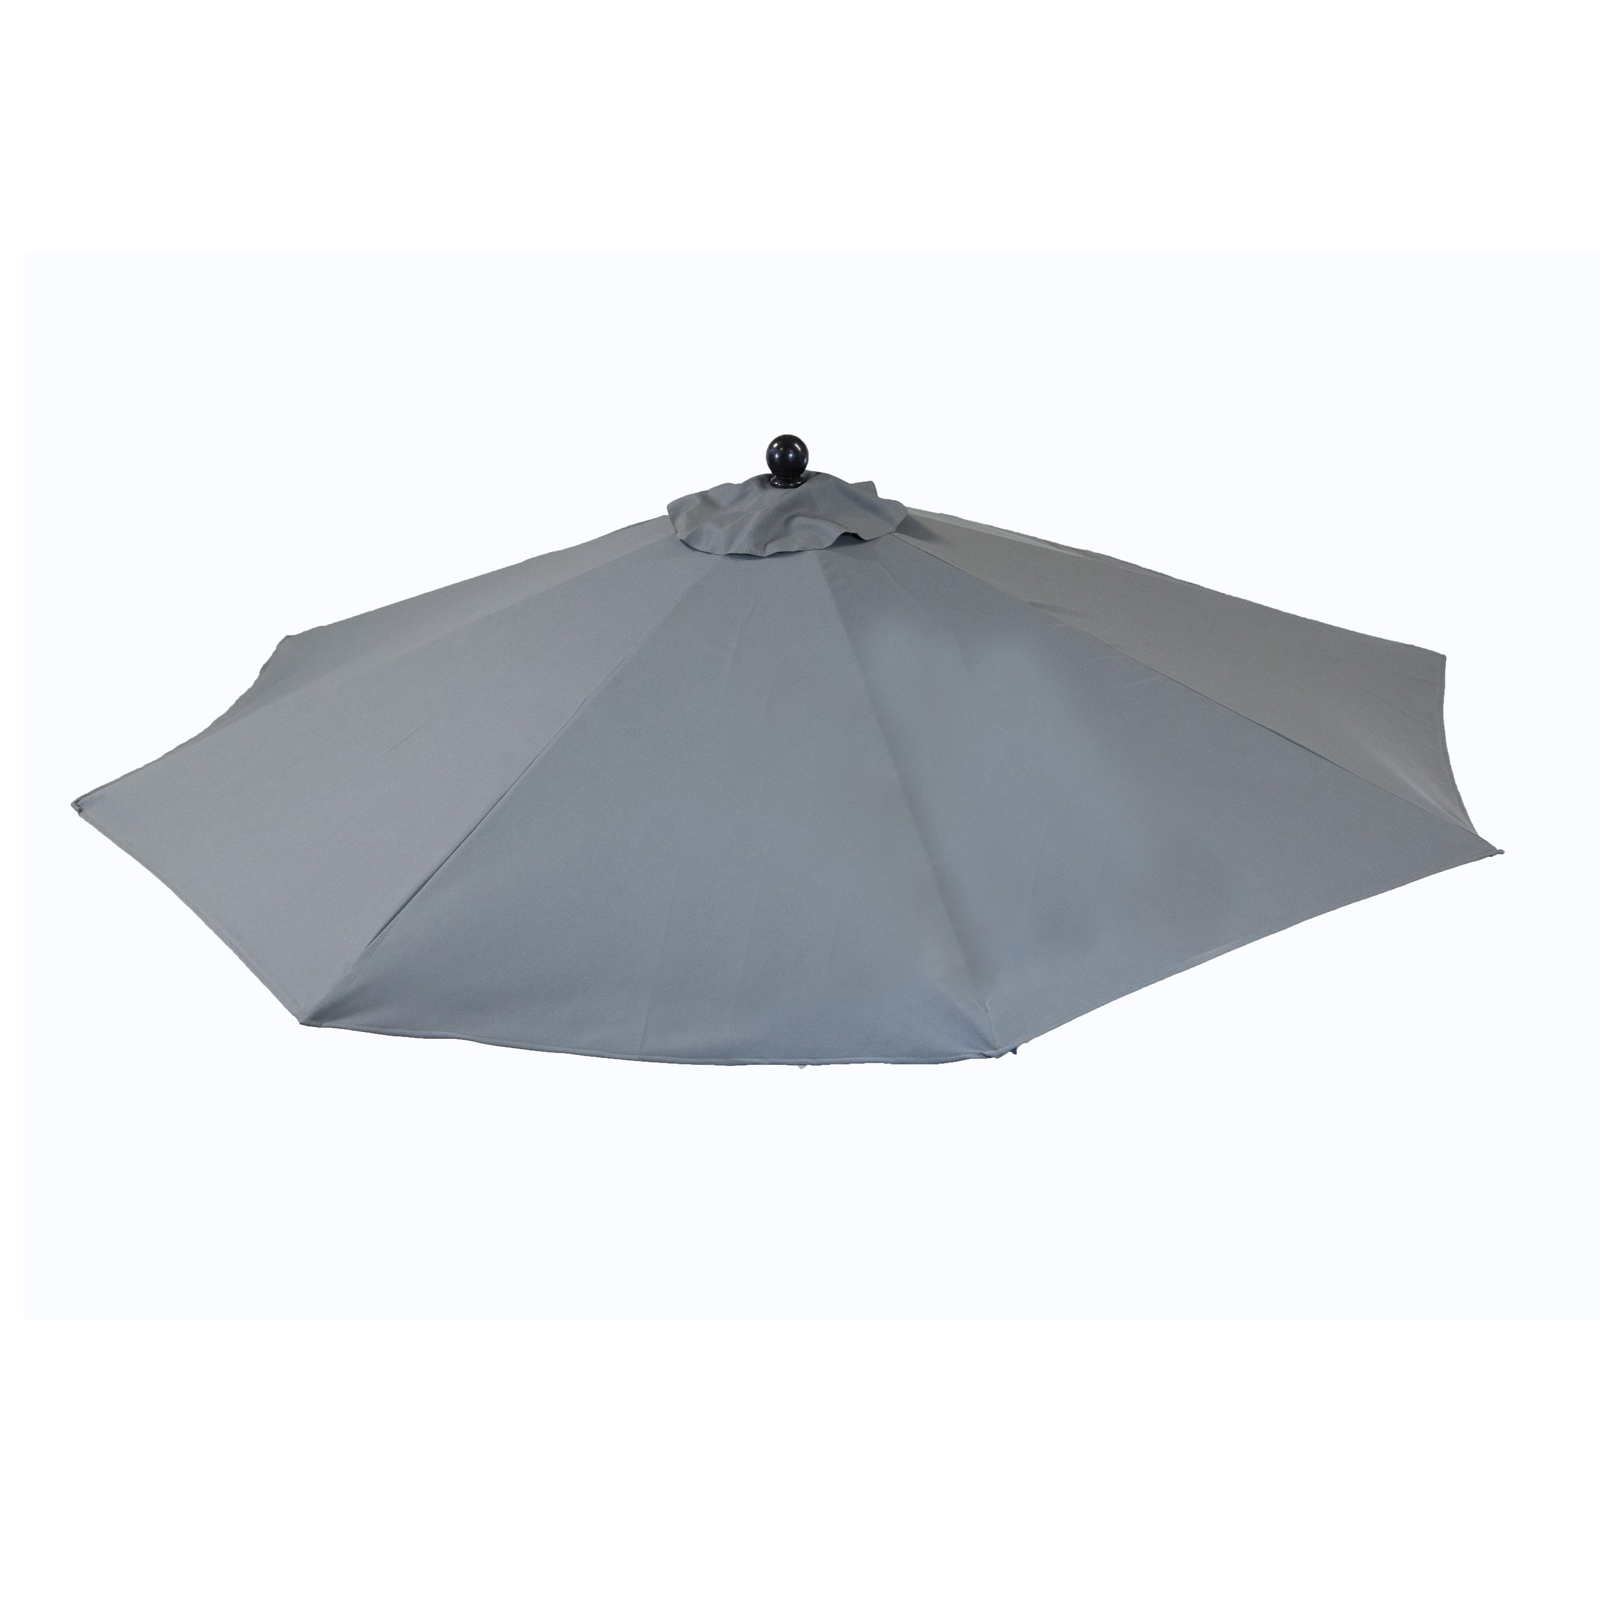 9ft Tilt Italian Market Umbrella Home Patio Canopy Sun Shelter - Slate